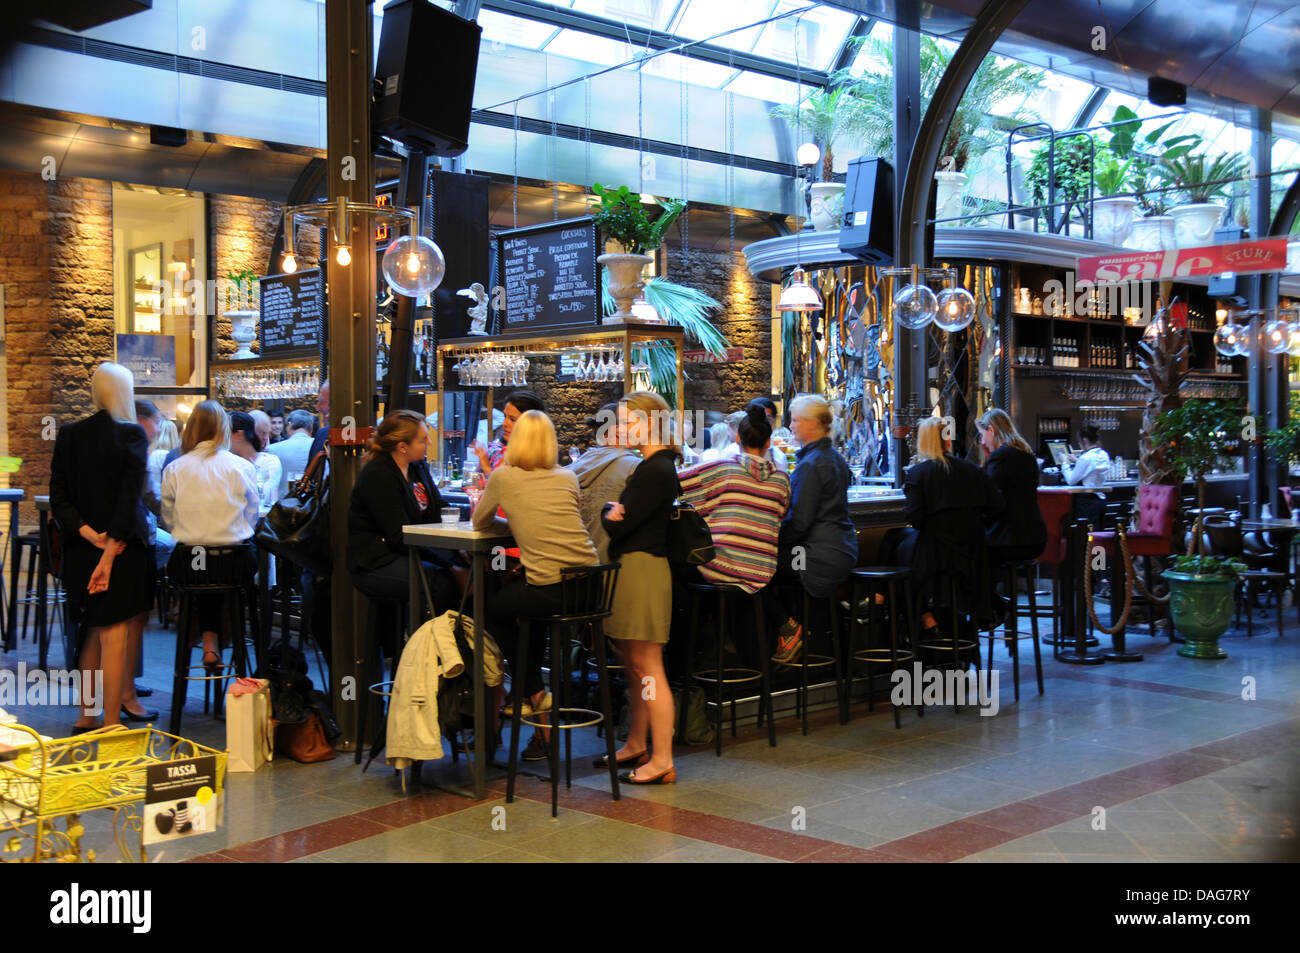 People at indoor bar and restaurants in Sture Gallerian at Stureplan in central Stockholm - Stock Image